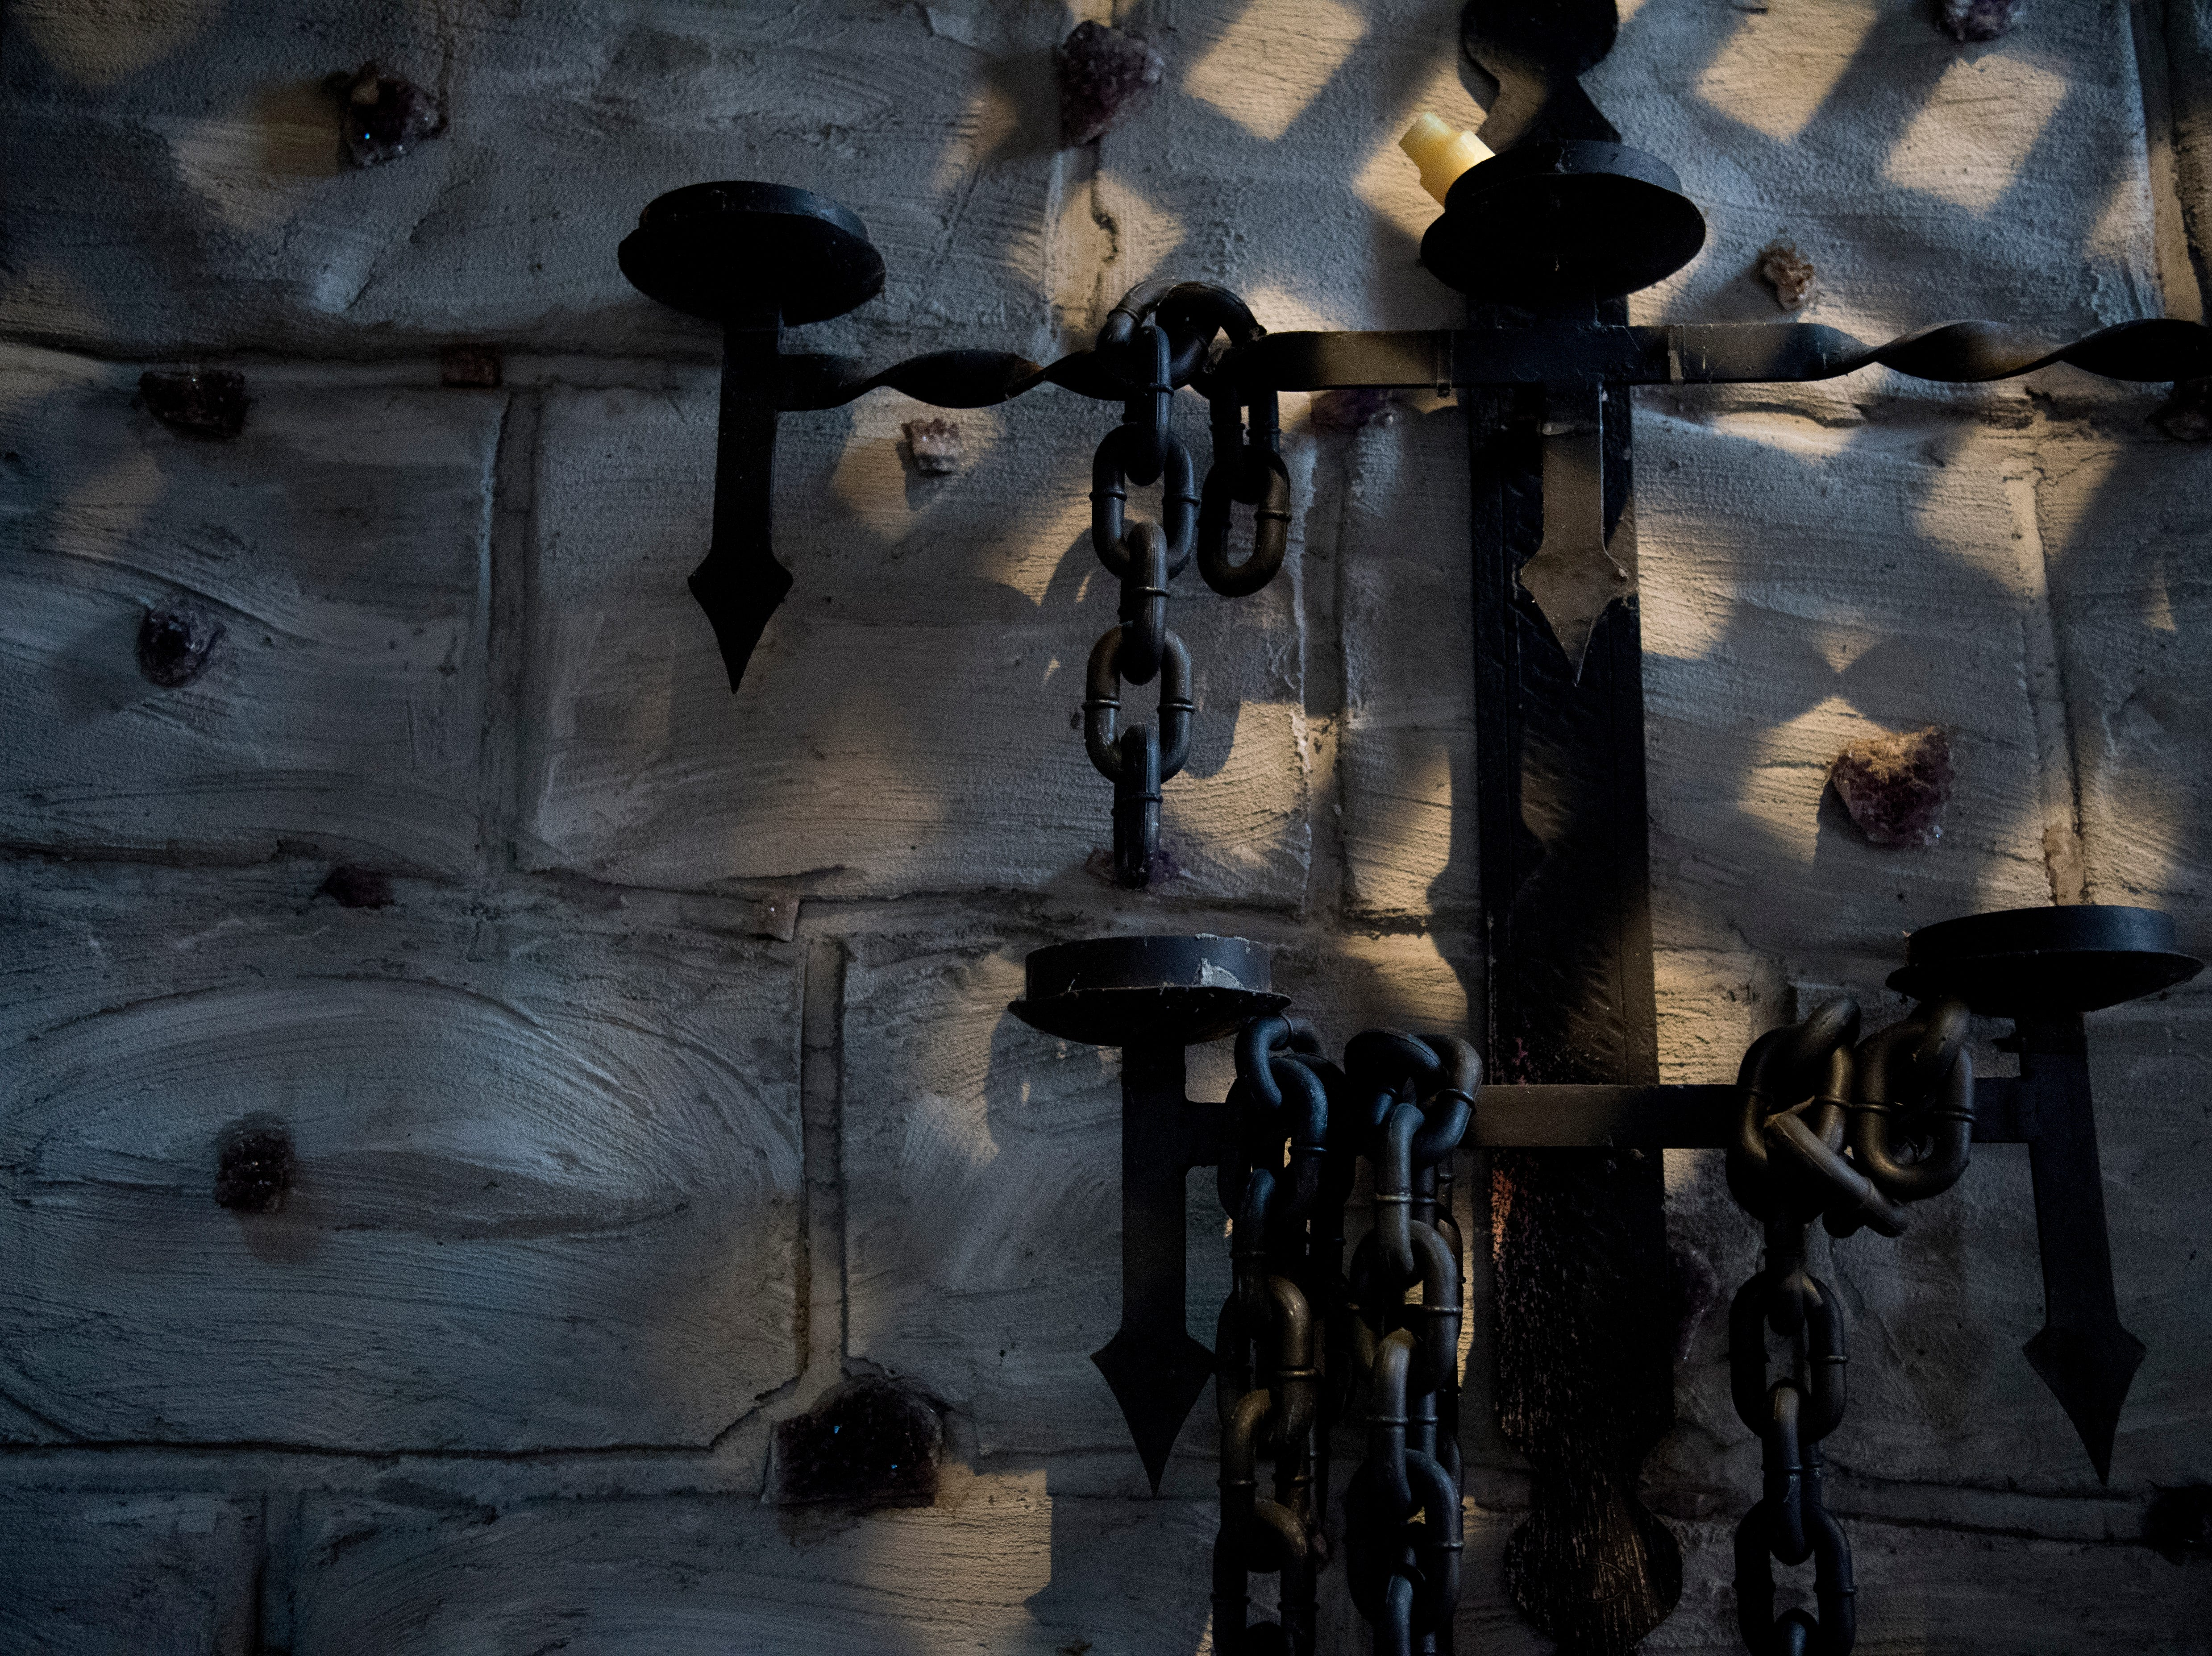 Chains hang from the wall in the dungeon inside Williamswood Castle in South Knoxville, Tennessee on Thursday, January 17, 2019. The home, modeled after a medieval castle, was built by Julia Tucker in 1991 and took 6 years to complete. Many of the items in the home were sourced from around the Knoxville area.